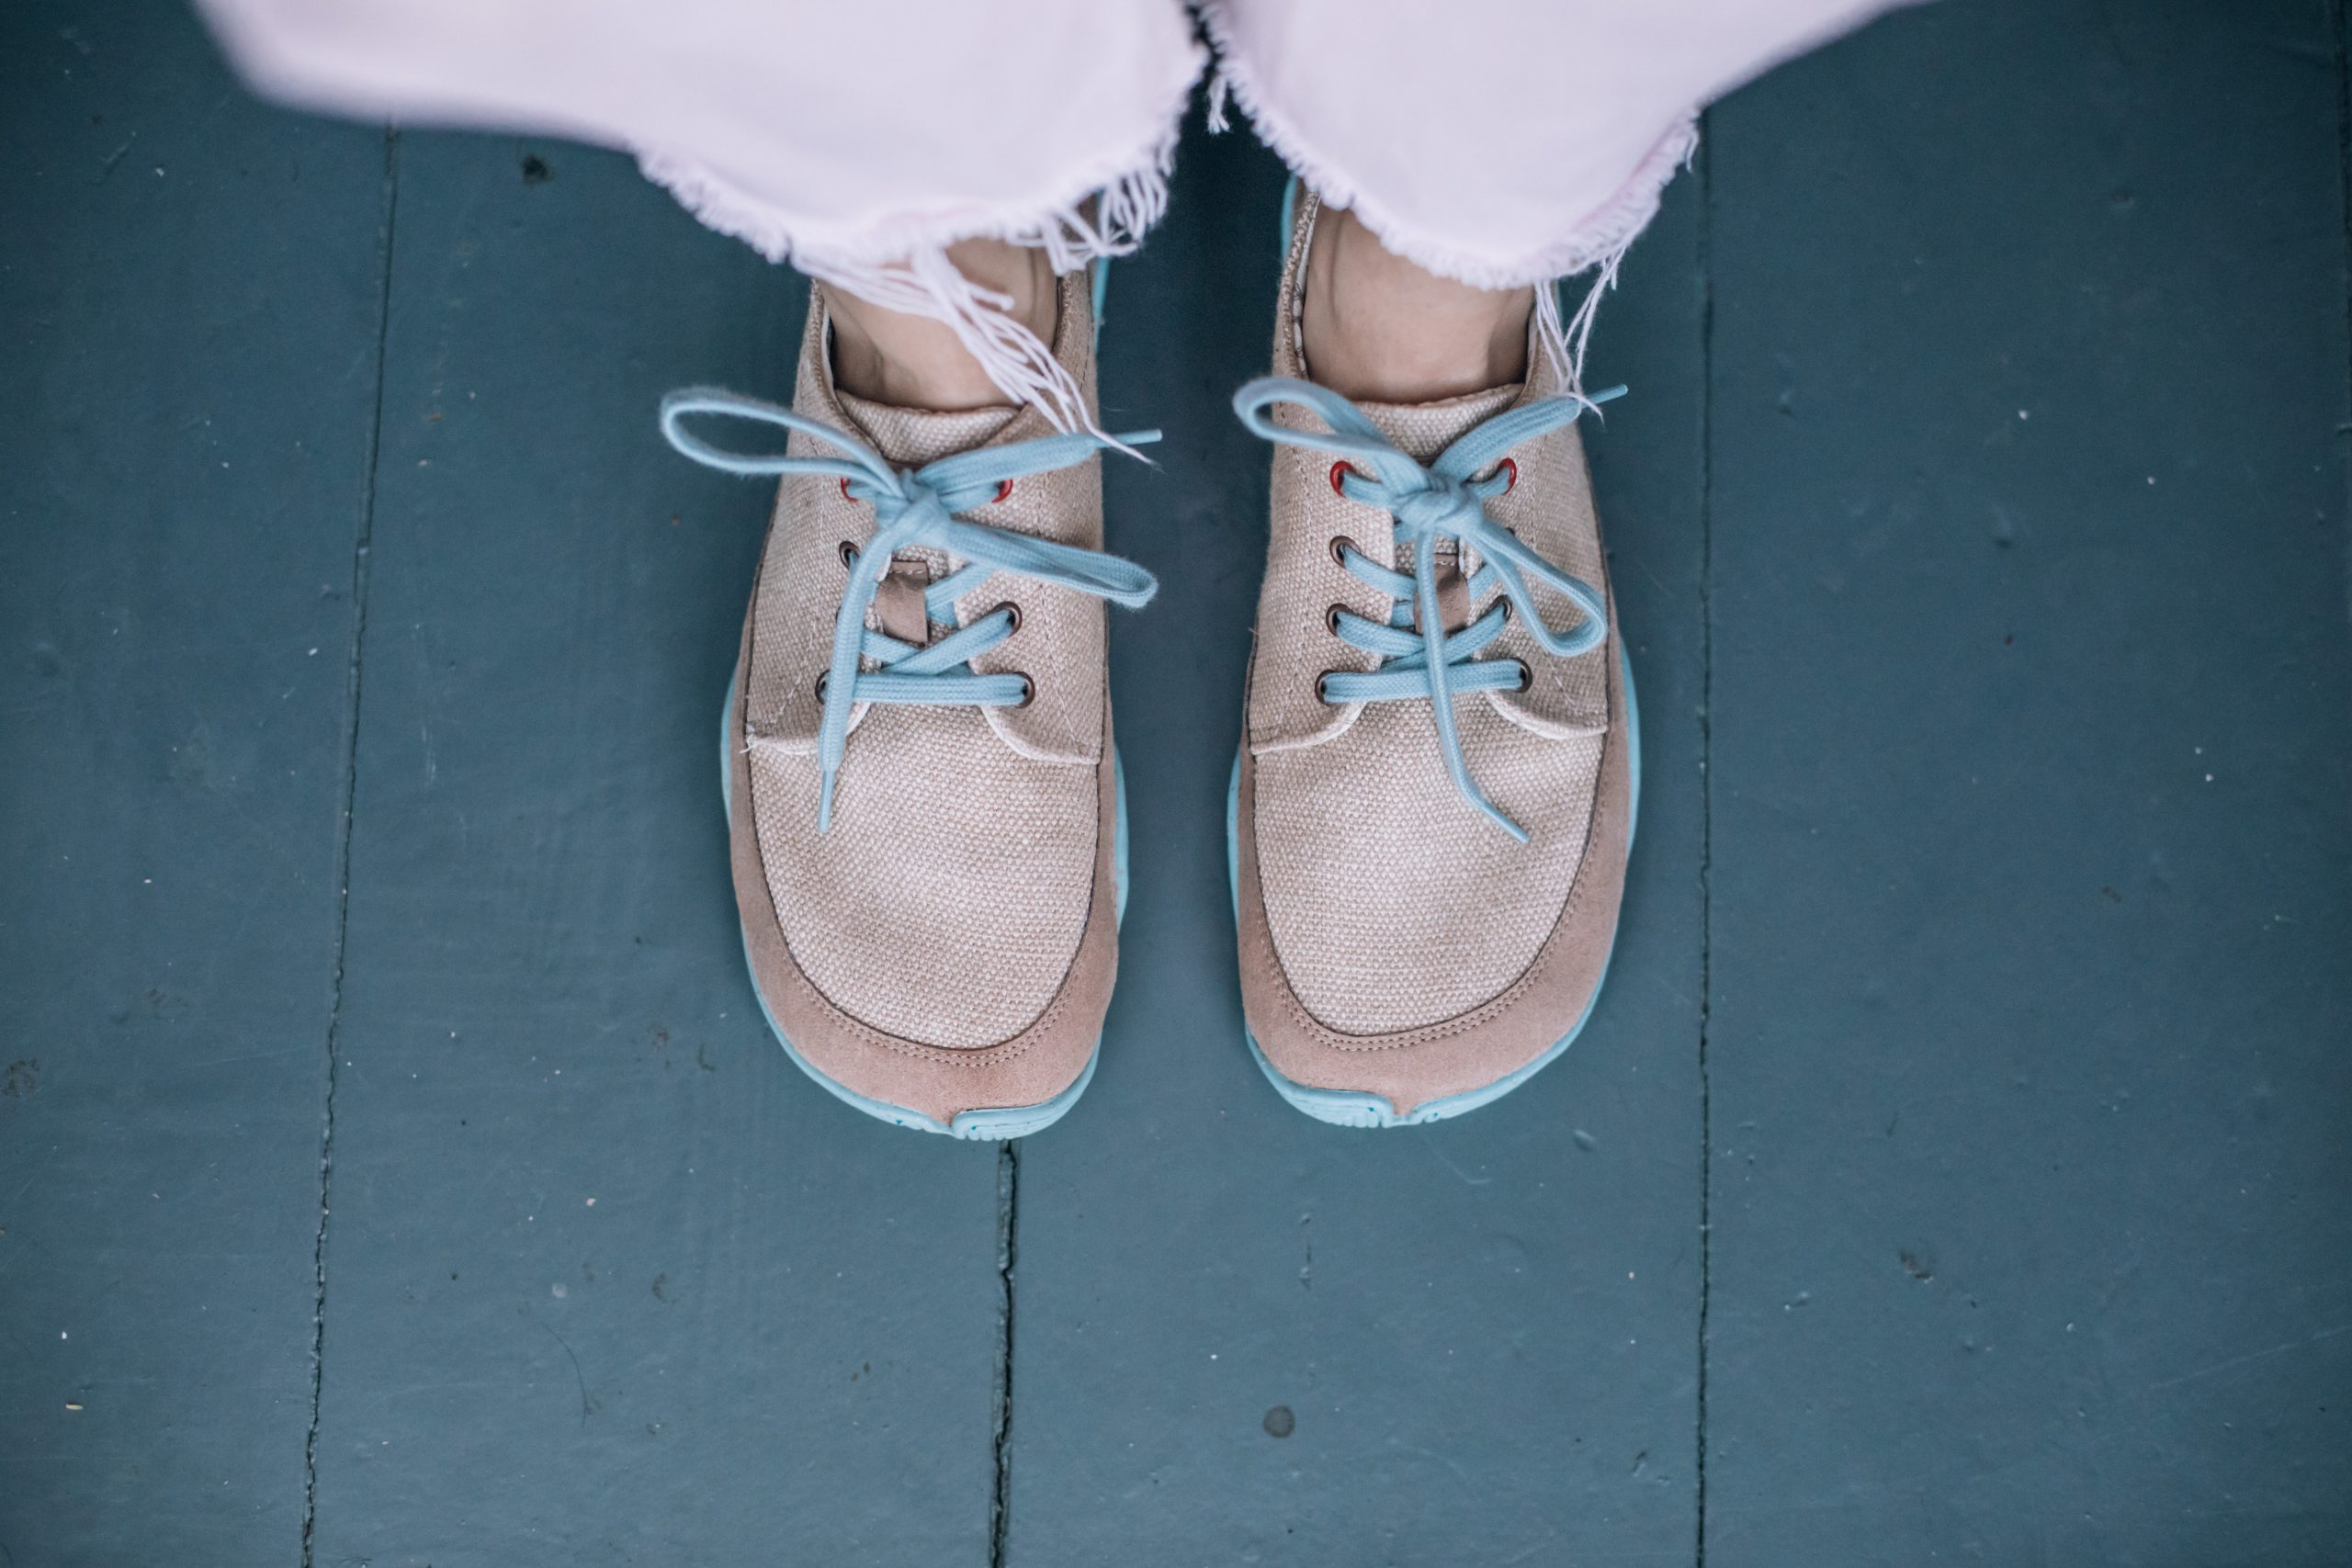 Wildling: Minimal Shoes Made Ethically